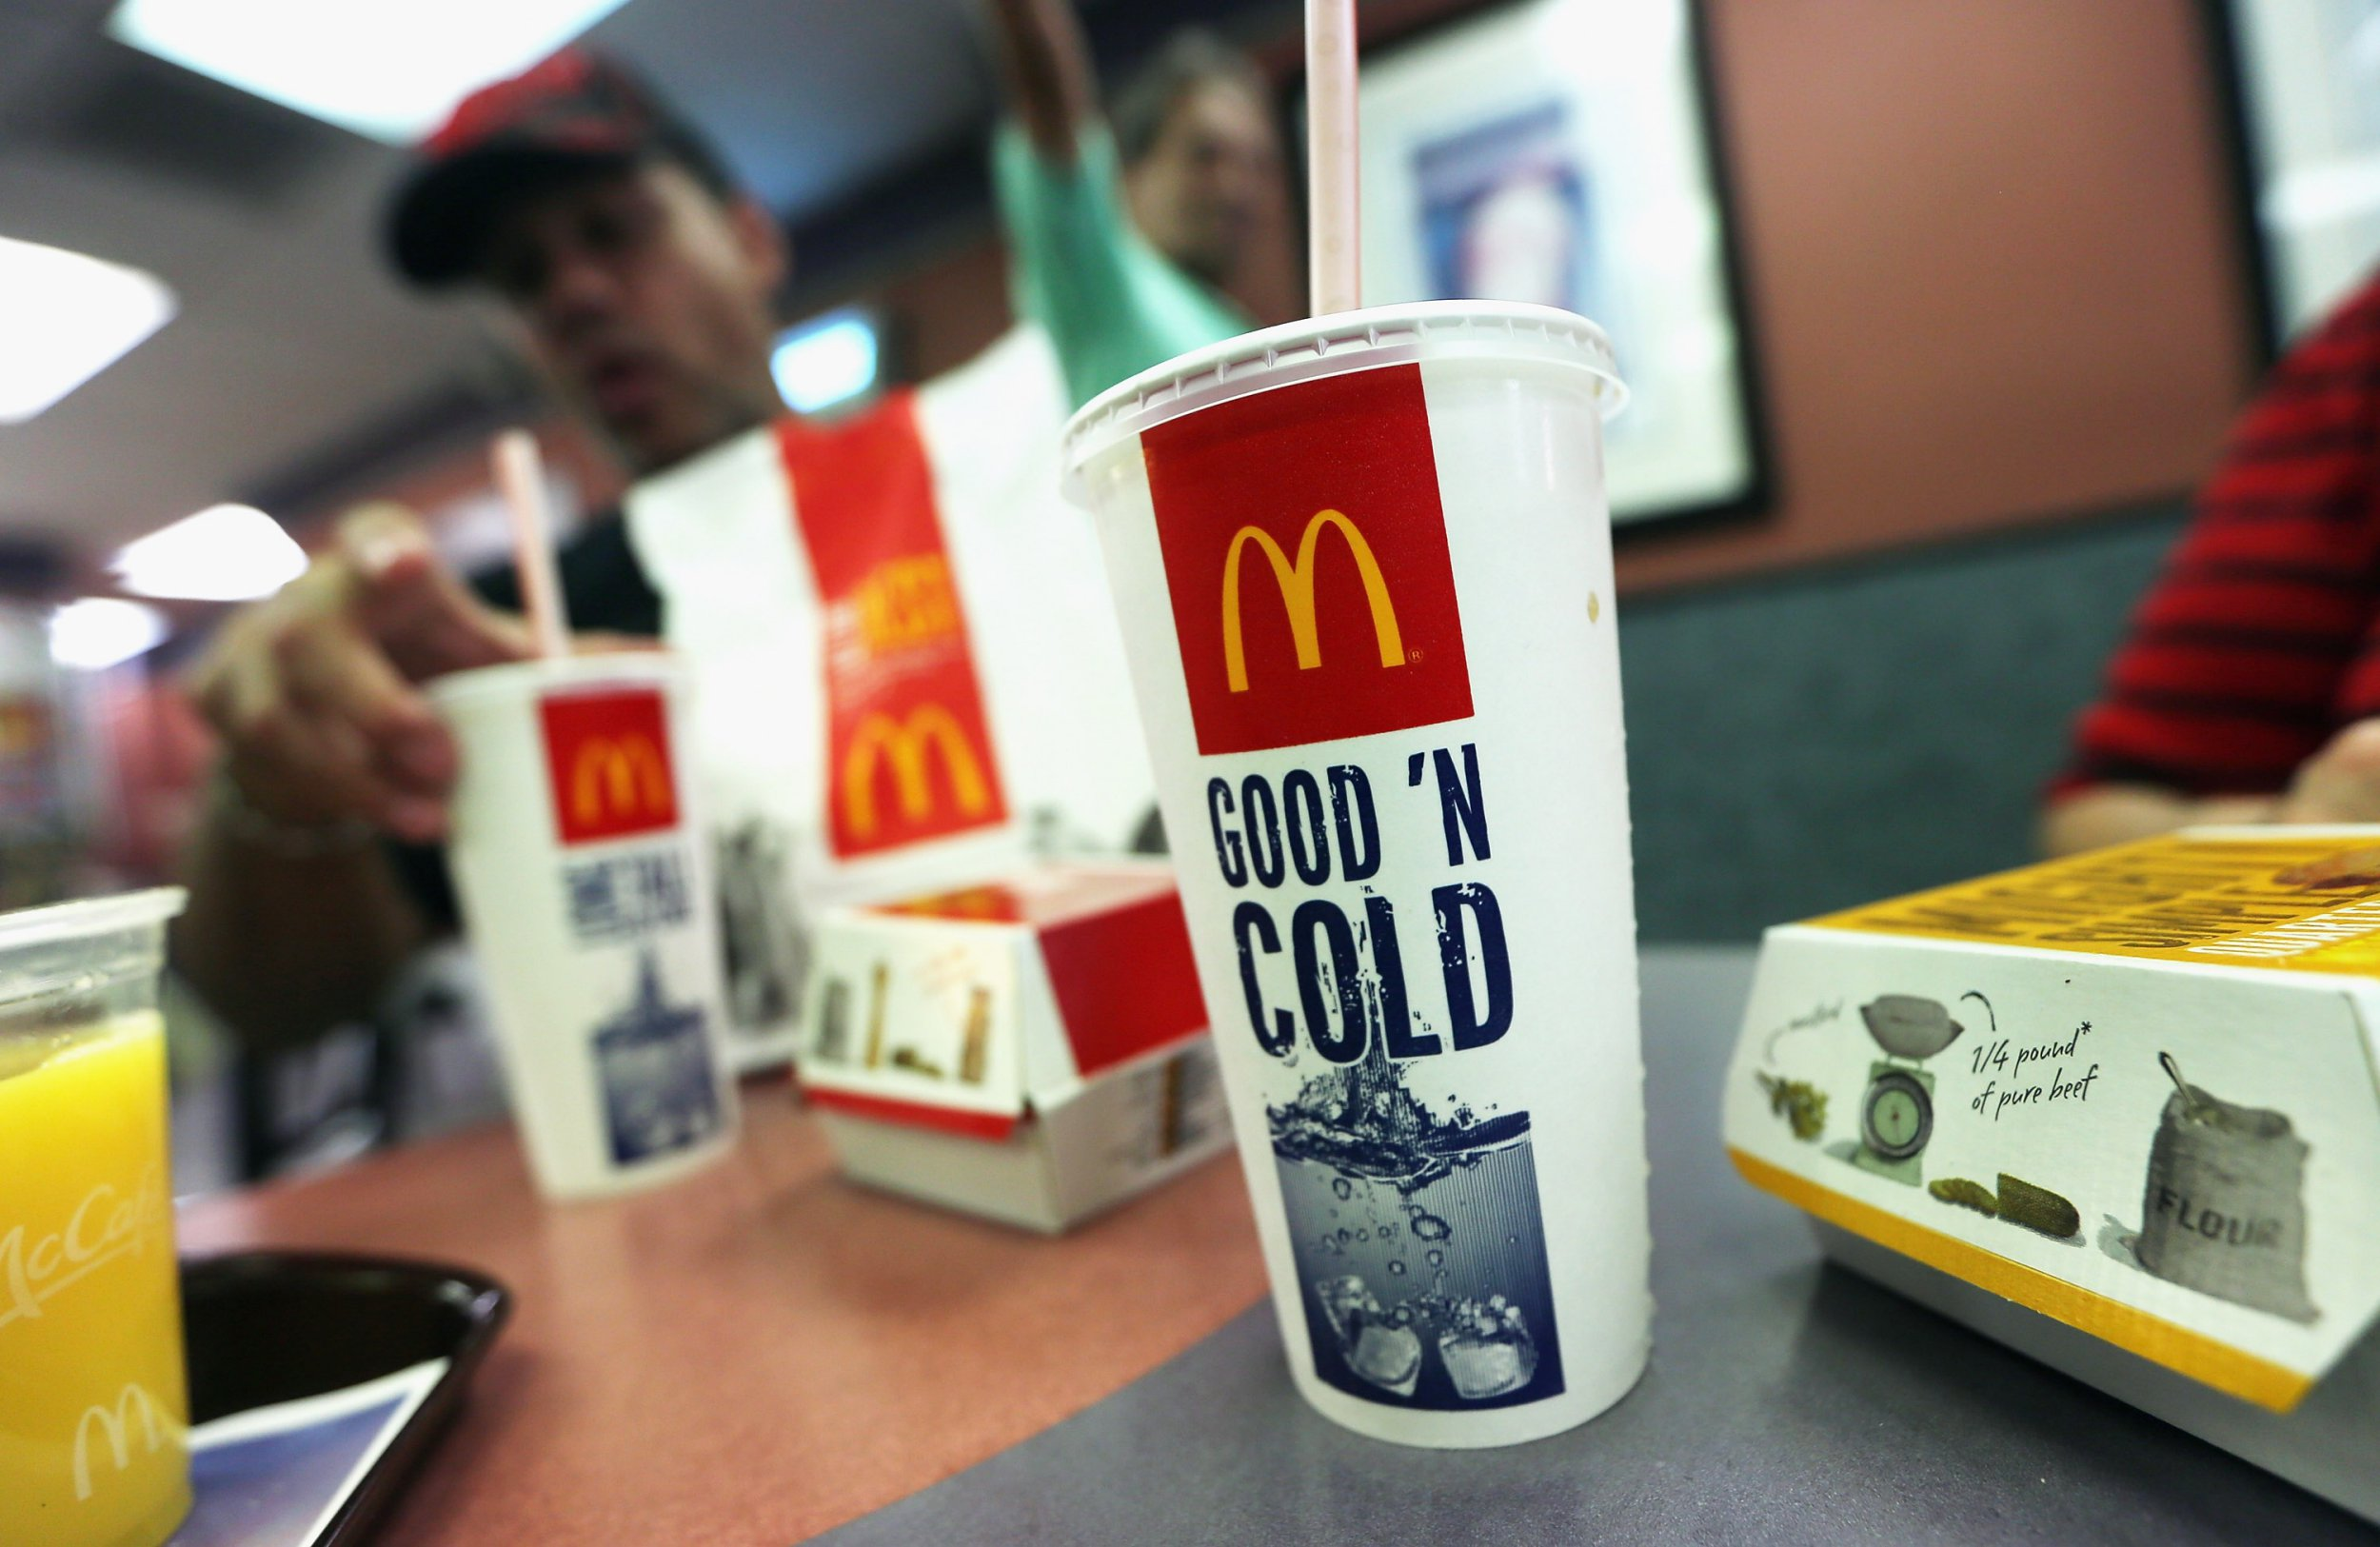 NEW YORK, NY - SEPTEMBER 13: A customer eats with a 21 ounce cups of soda at a Manhattan McDonalds on September 13, 2012 in New York City. In an effort to combat obesity, the New York City Board of Health voted to ban the sale of large sugary drinks. The controversial measure bars the sale of sugar drinks larger than 16 ounces at restaurants and concessions. (Photo by Mario Tama/Getty Images)